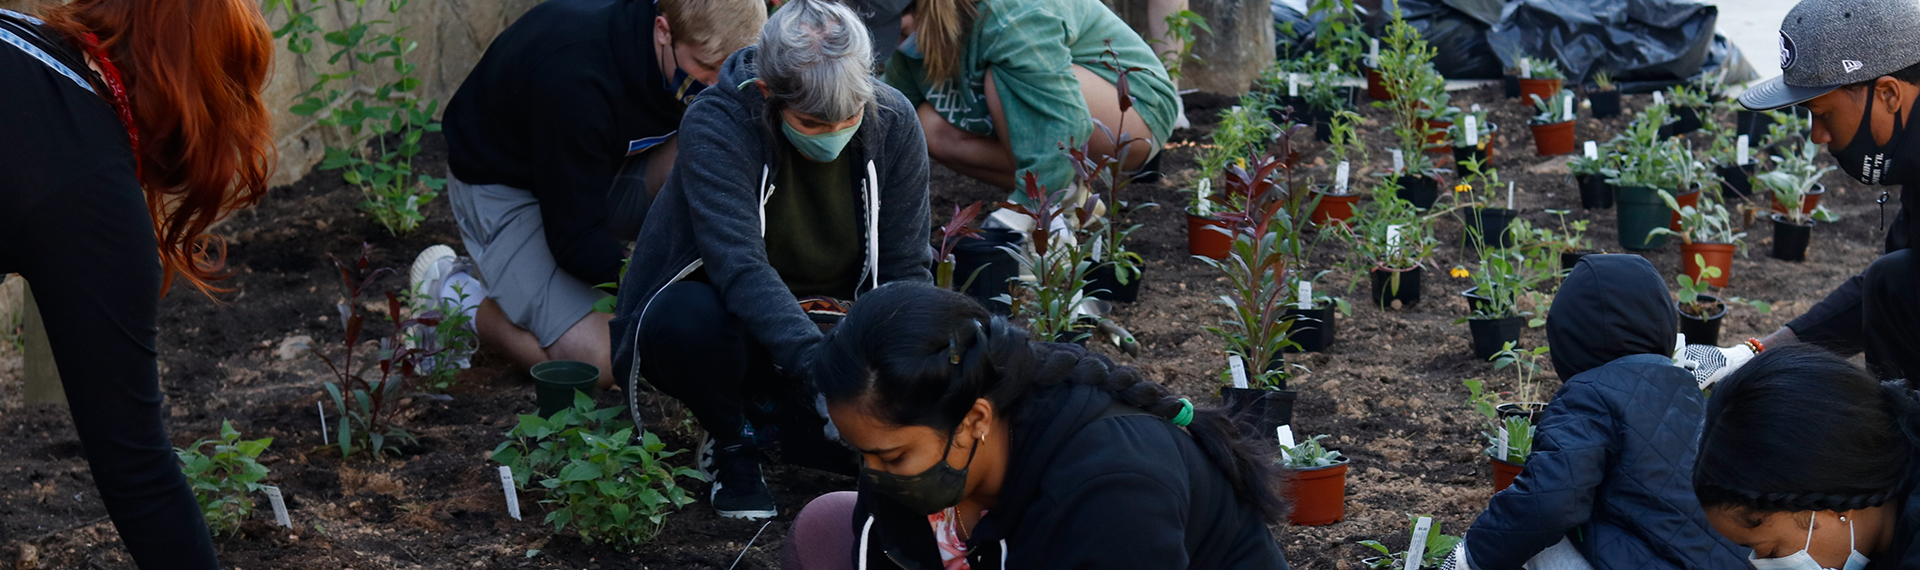 Volunteers are planting pollinator plants in the ground